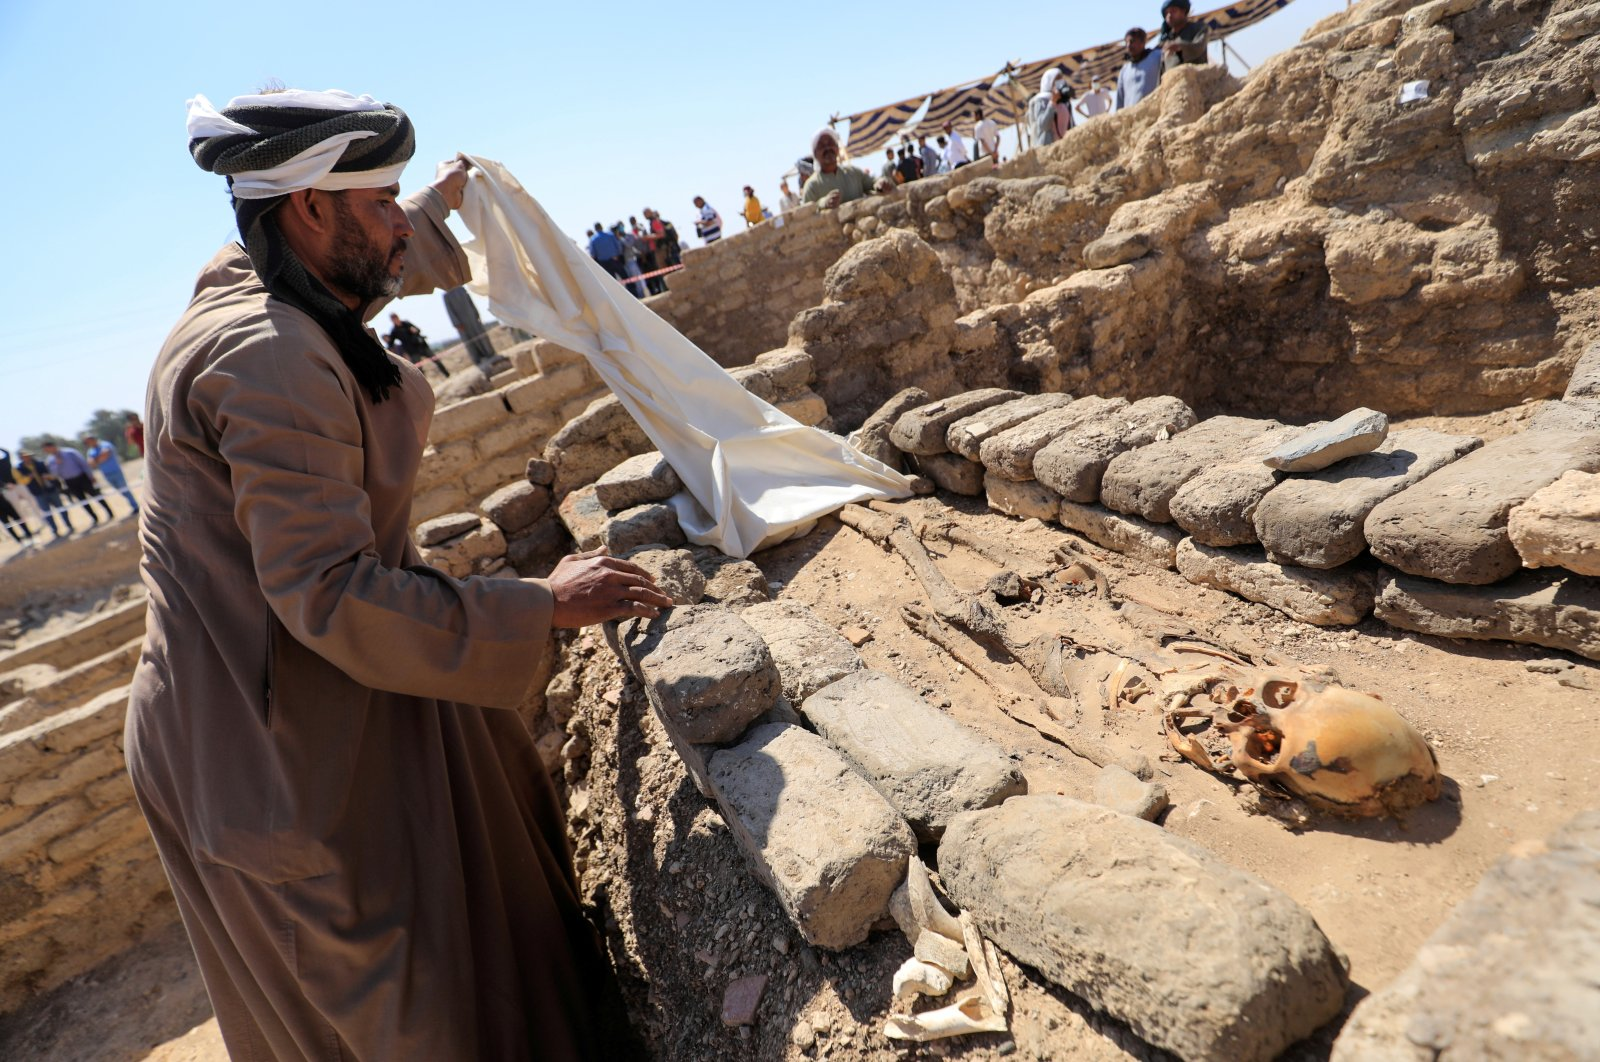 A man looks at skeletal human remains at the site of the 'Lost Golden City', which was recently discovered by archaeologists, in the West Bank of Luxor, upper Egypt, April 10, 2021. (Reuters Photo)